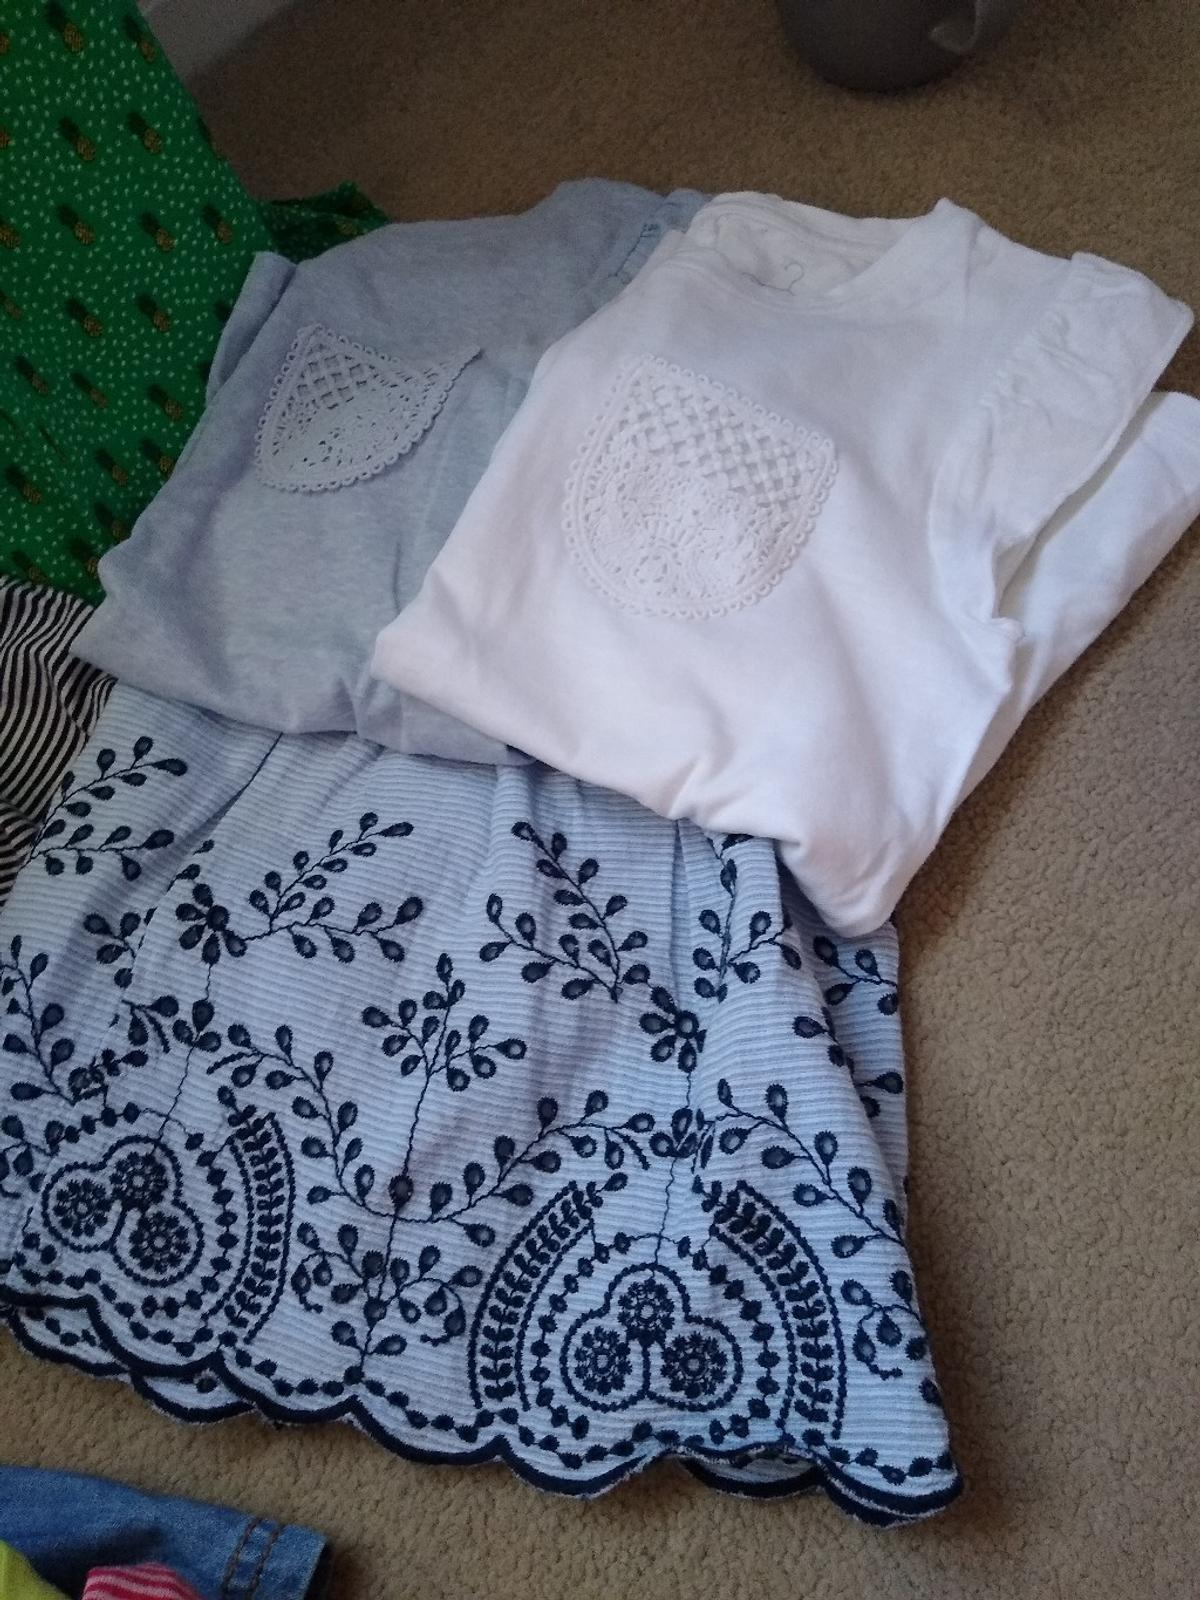 Mostly from Next includes 6 dresses, two skirts, 3 leggings, pink jeans still with label7 tops (incl one Shopkins), pair of shorts with matching top. All in excellent condition.